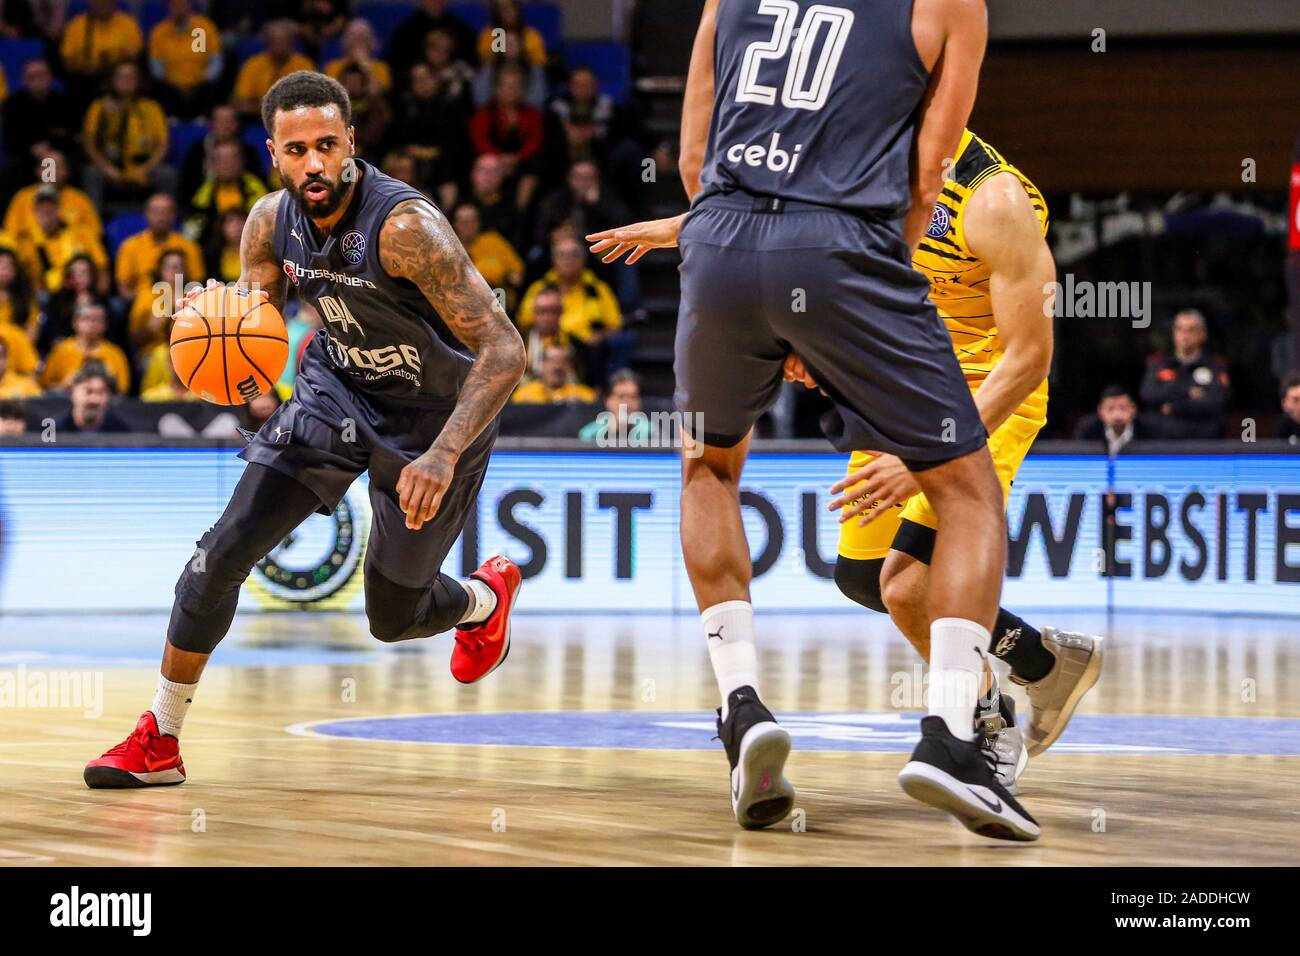 Tenerife, Italy. 3rd Dec, 2019. bryce taylor (brose bamberg) in actionduring Iberostar Tenerife vs Bamberg, Basketball Champions League in Tenerife, Italy, December 03 2019 - LPS/Davide Di Lalla Credit: Davide Di Lalla/LPS/ZUMA Wire/Alamy Live News Stock Photo